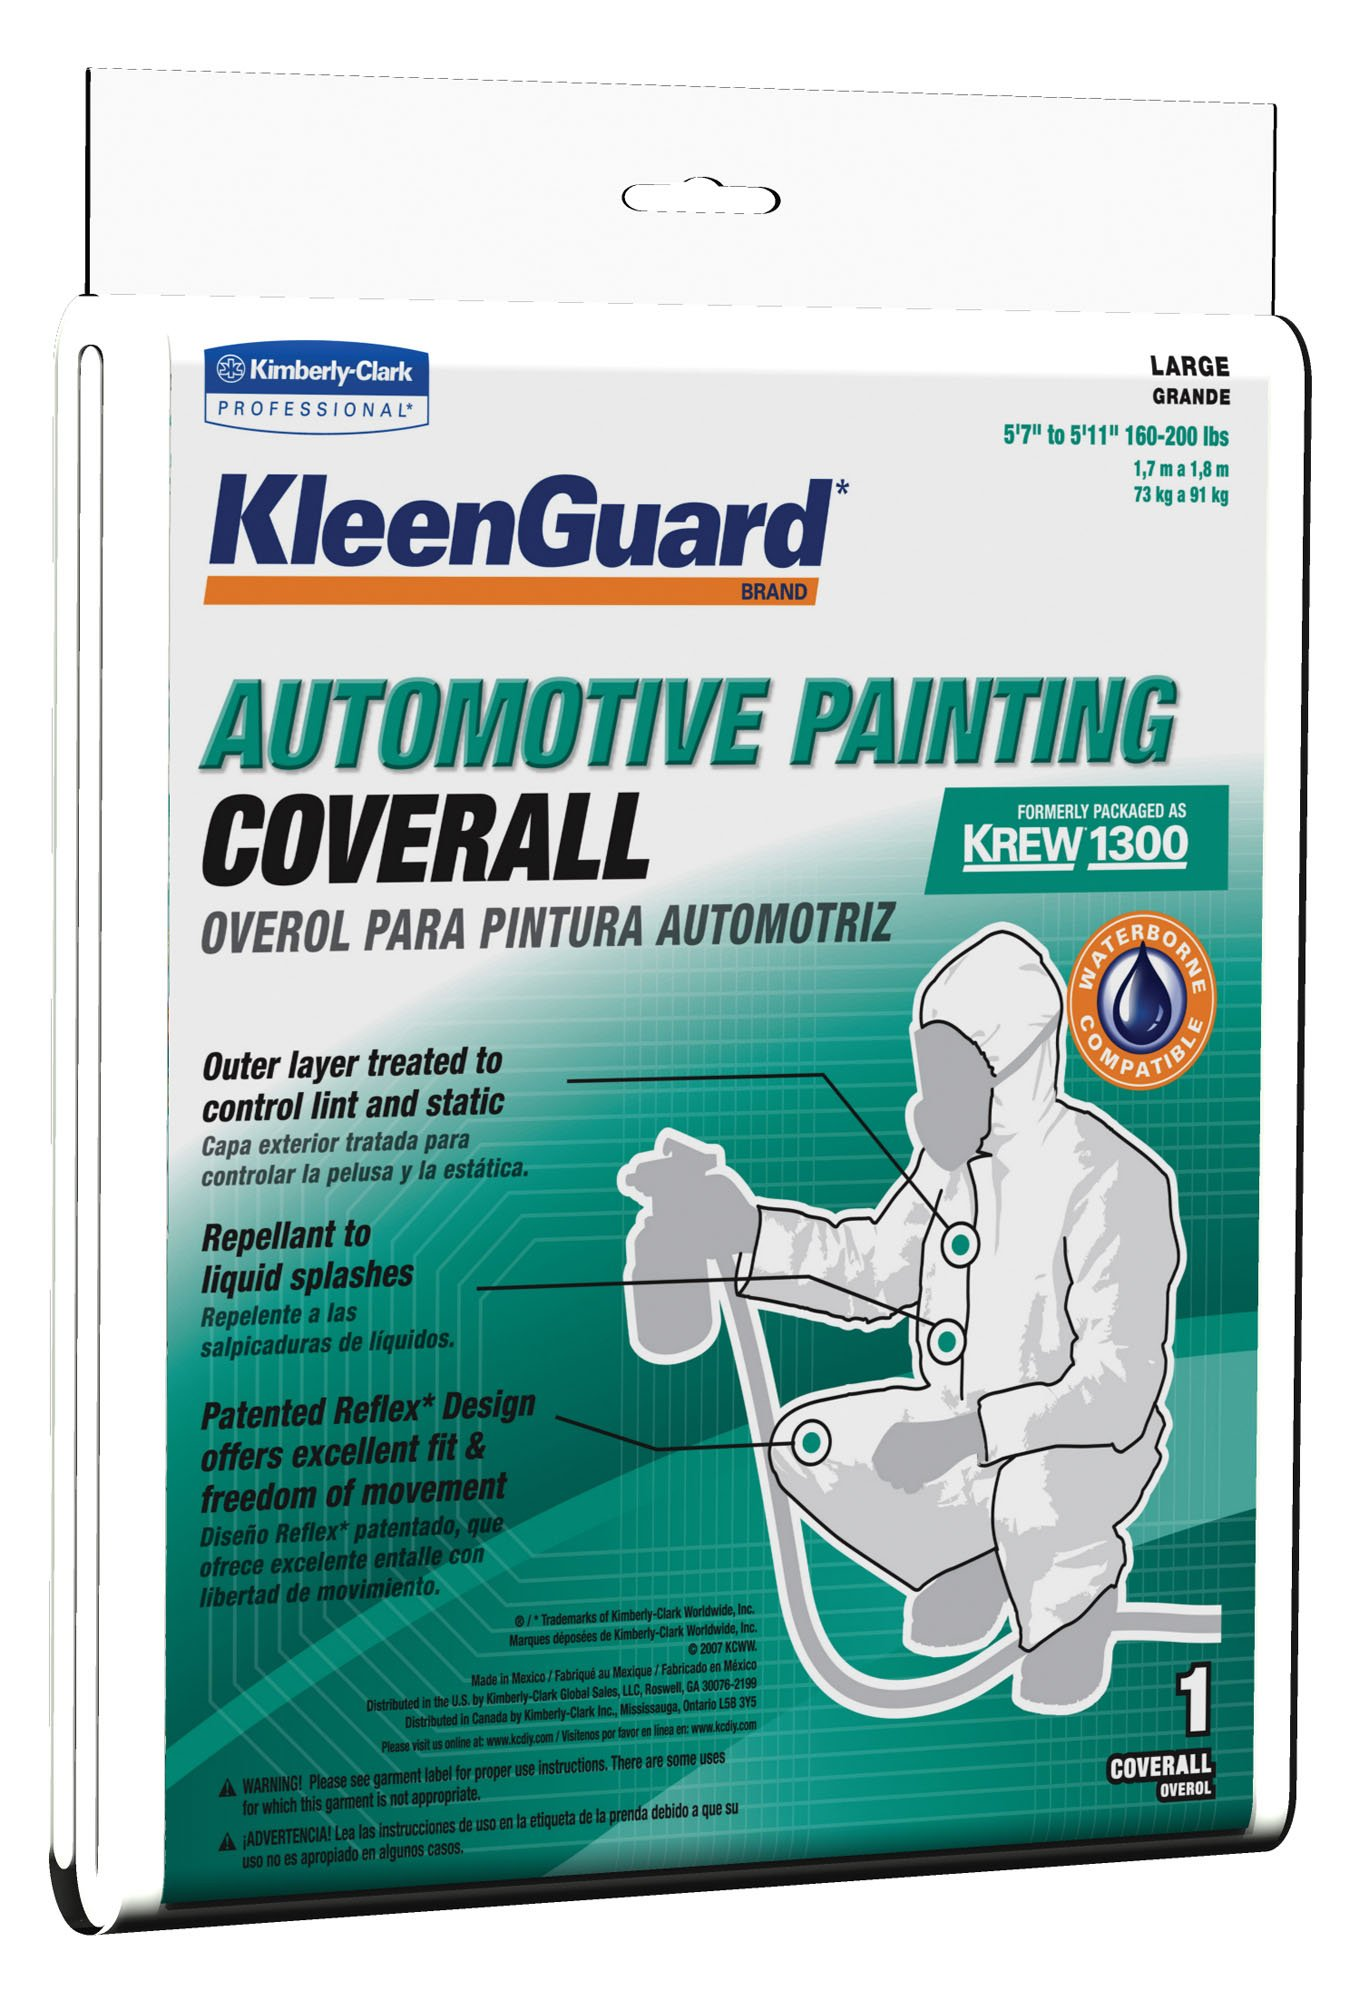 KleenGuard Automotive Painting Coveralls Hooded